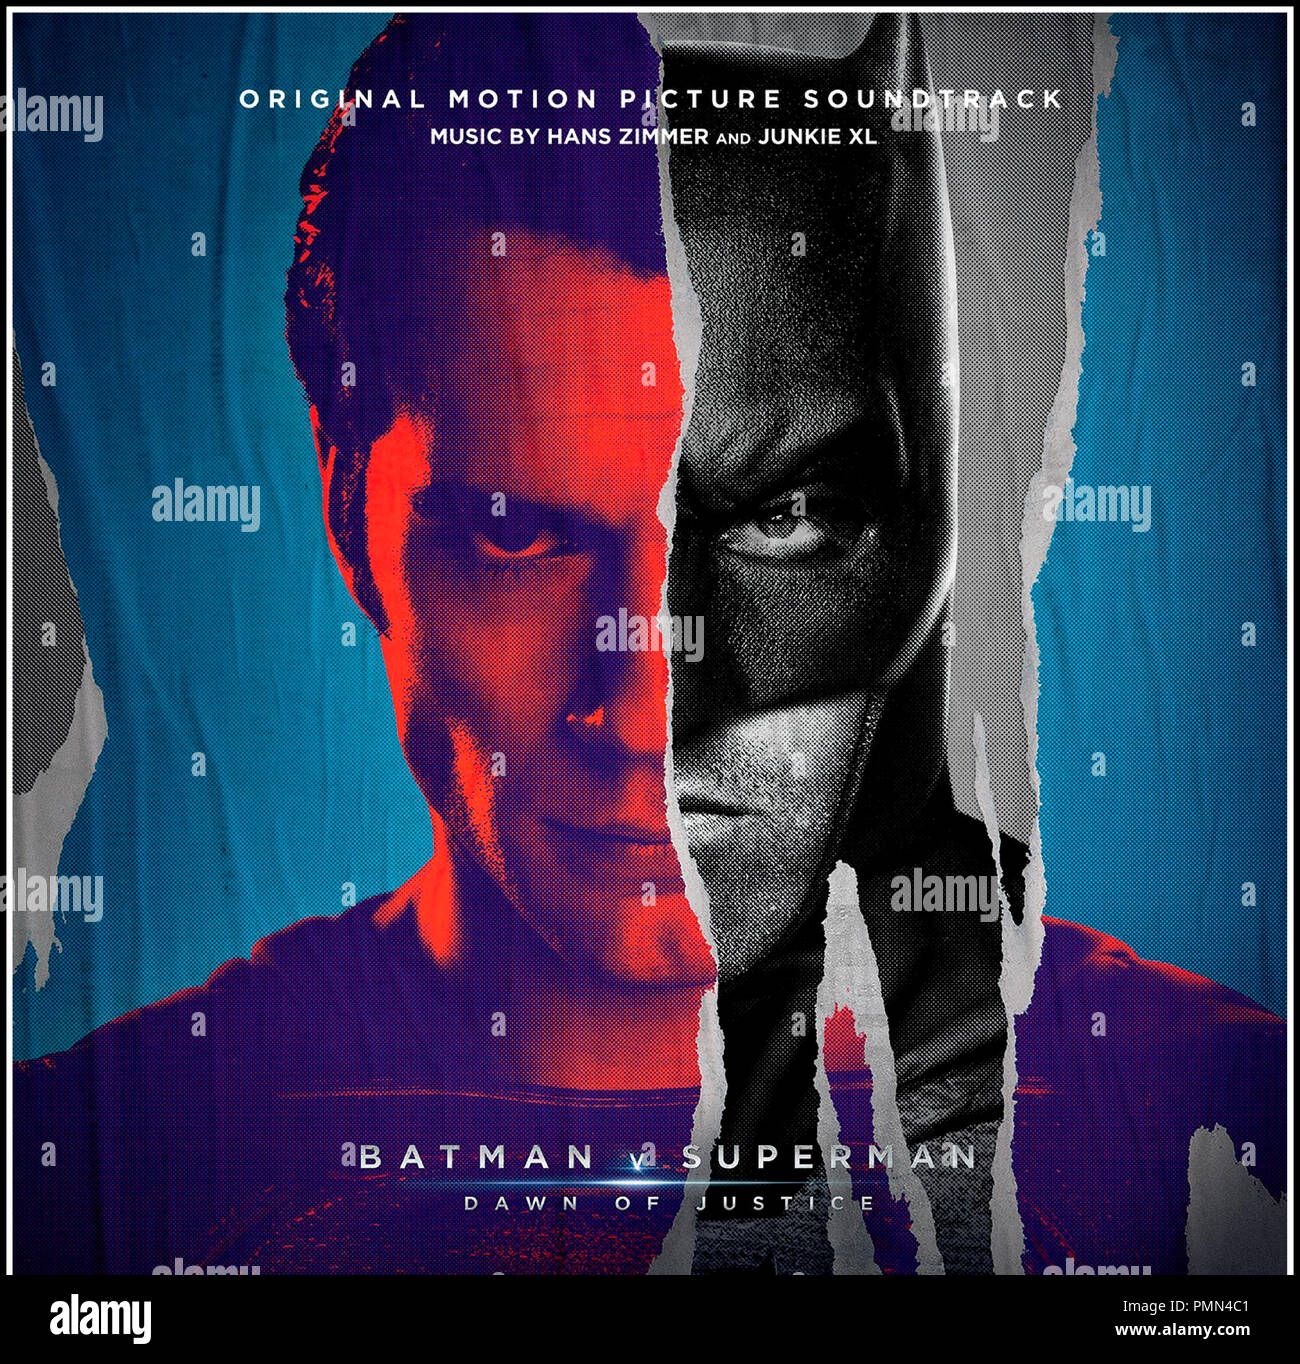 Prod DB © Warner Bros. - DC Entertainment - RatPac-Dune Entertainment - Syncopy / DR BATMAN V SUPERMAN: L'AUBE DE LA JUSTICE (BATMAN VS. SUPERMAN: DAWN OF JUSTICE) de Zack Snyder 2016 USA bande originale du film de Hans Zimmer et Junkie XL - Stock Image